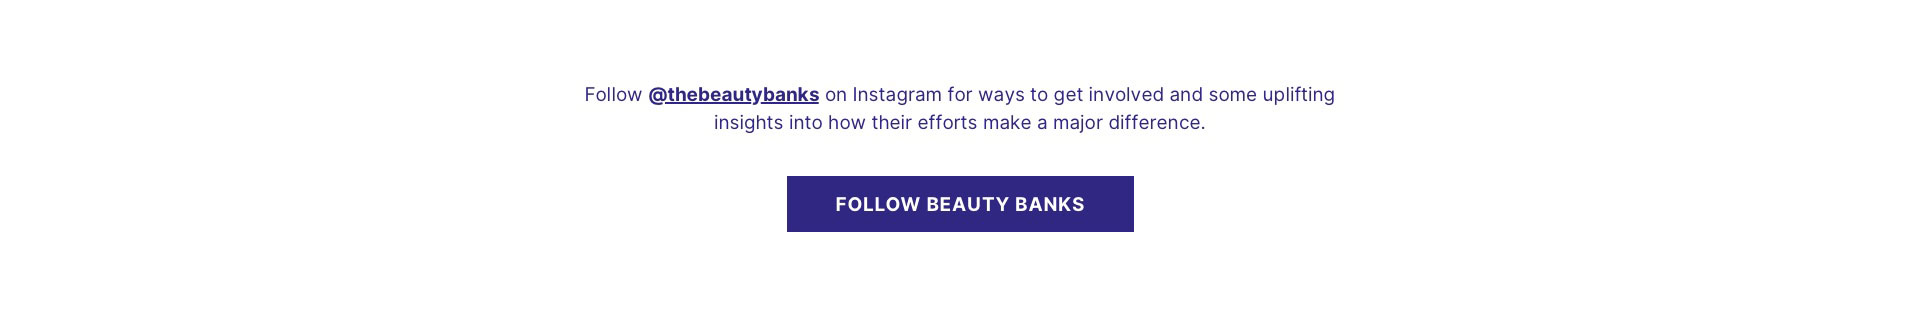 follow @thebeautybanks on instagram for ways to get involved and some uplifting insights into how their effort make a major difference.